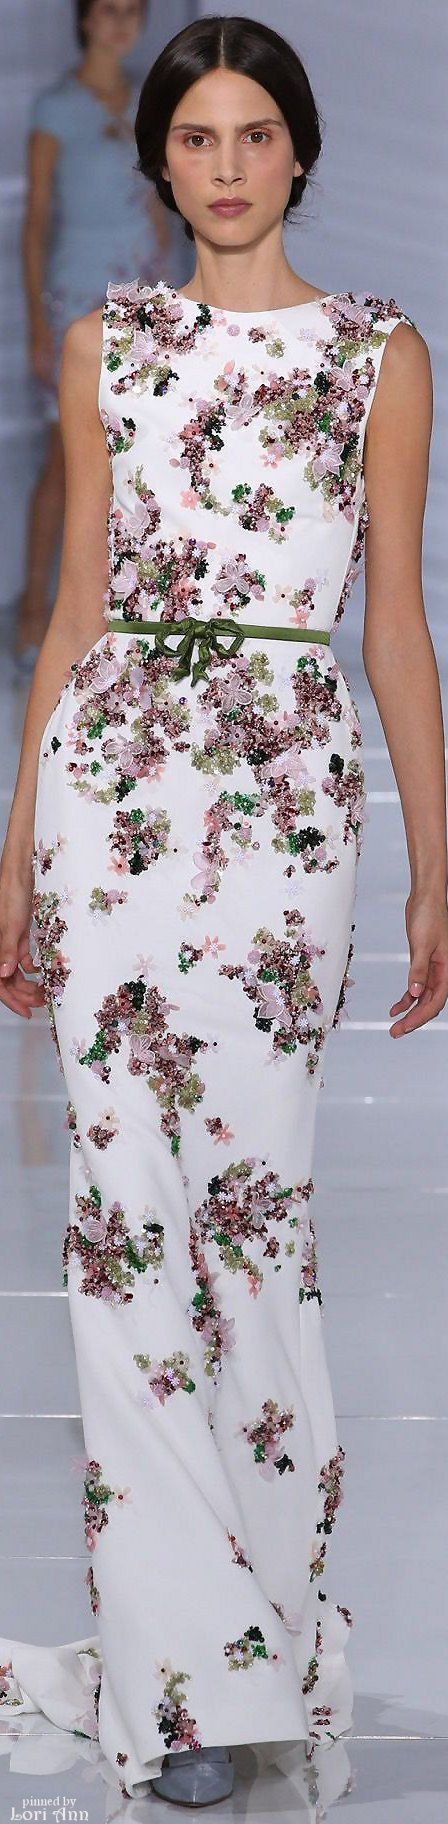 white floral maxi dress @roressclothes closet ideas women fashion outfit clothing style Georges Hobeika Couture Fall 2015: